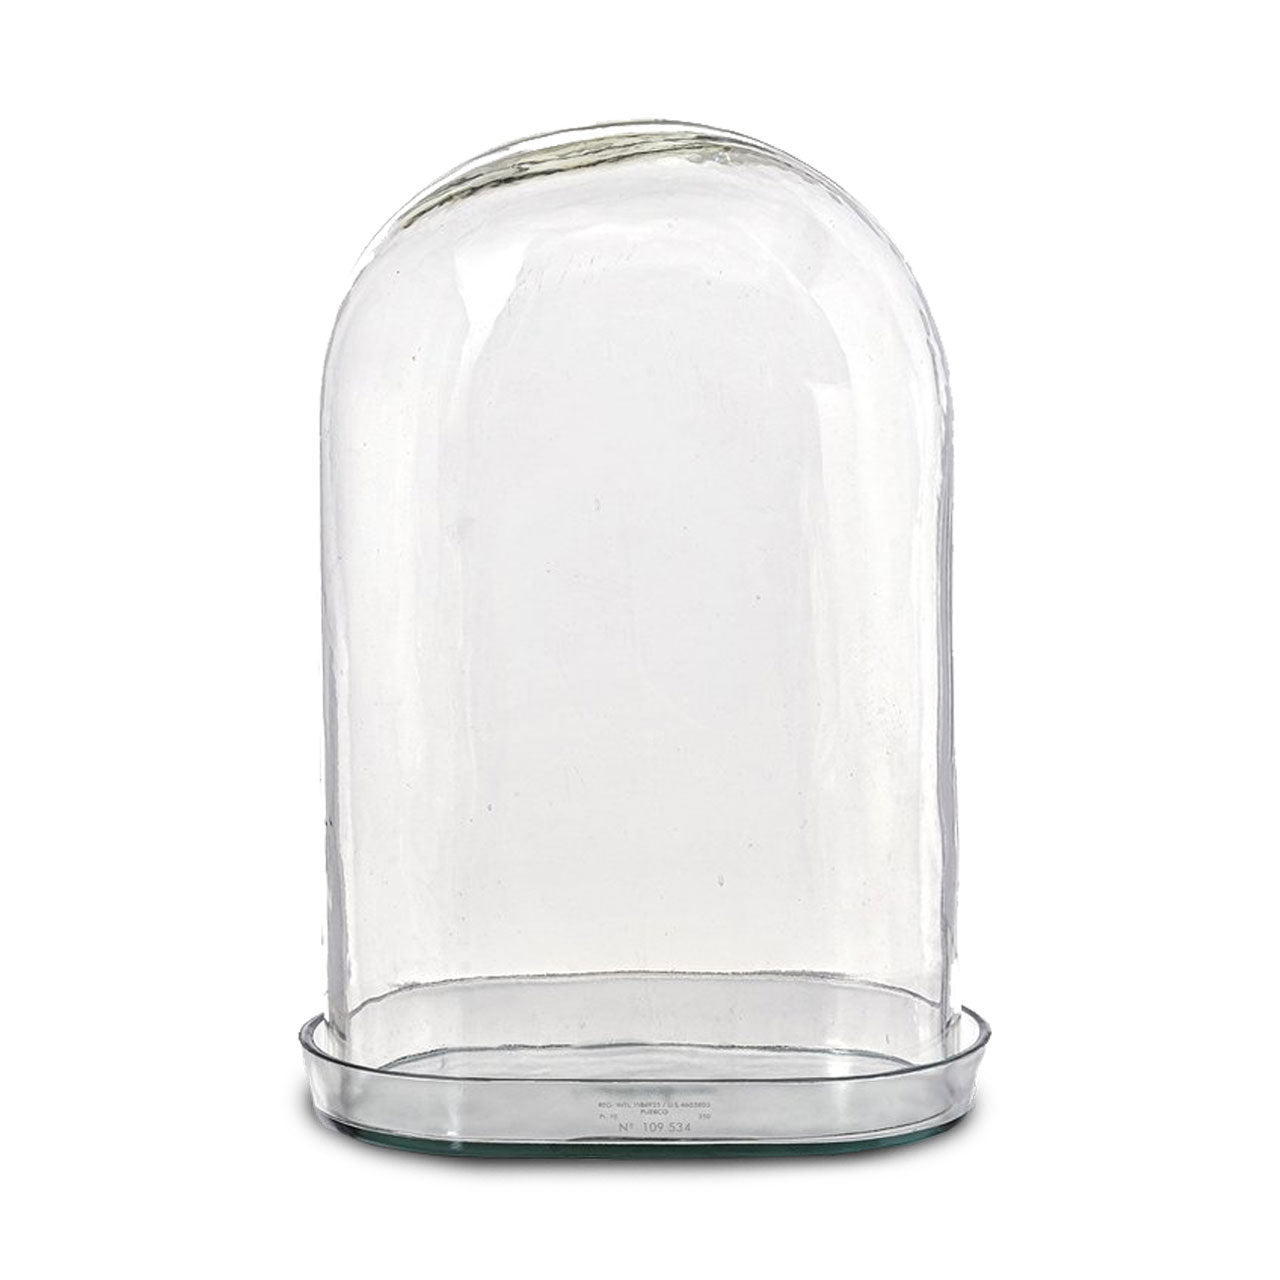 Glass Dome Display Case